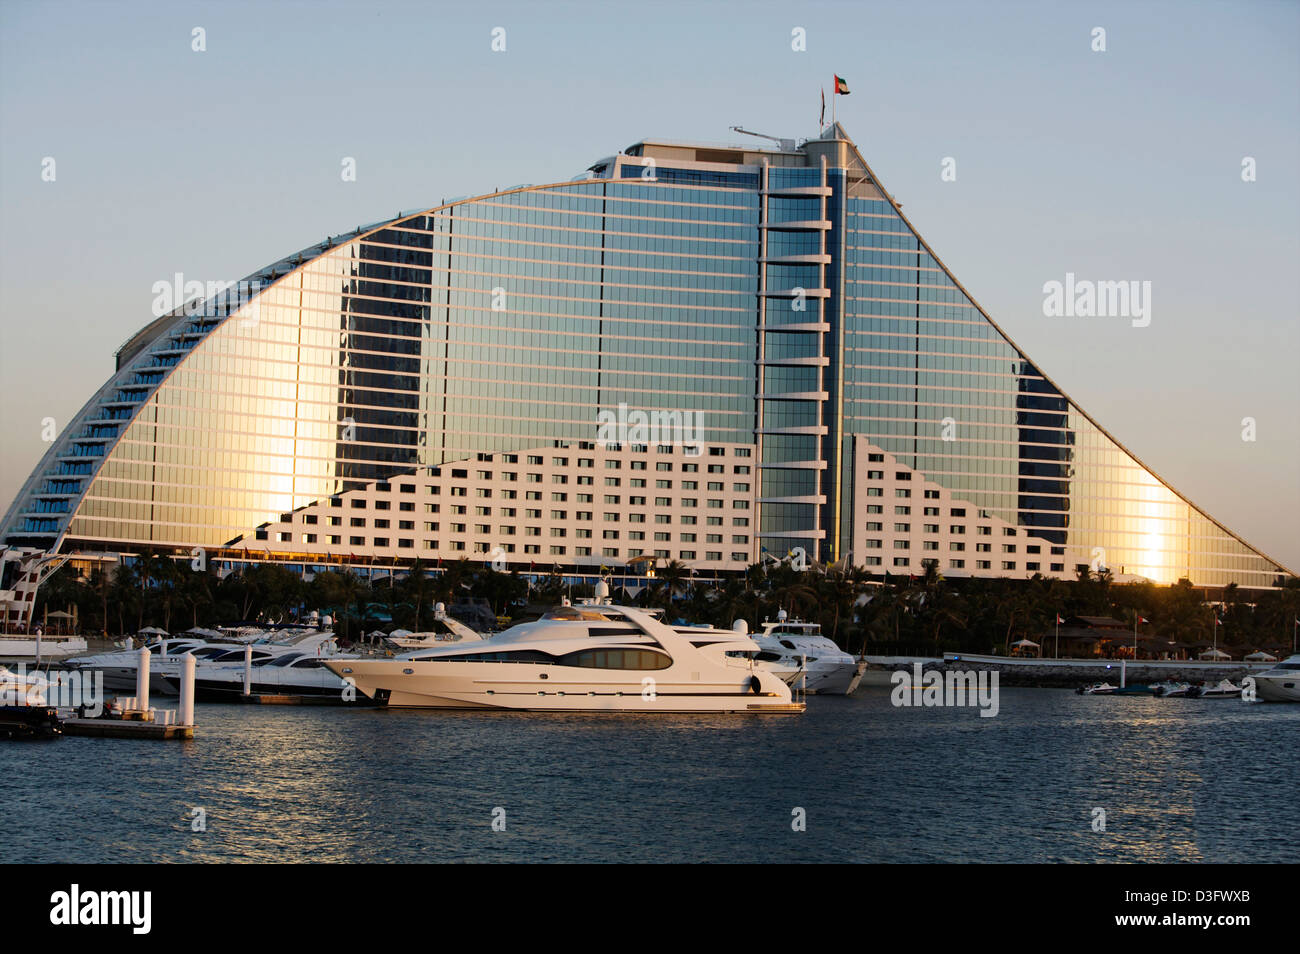 Jumeirah Beach Hotel Dubai with a luxury yacht in the foreground at sunset - Stock Image